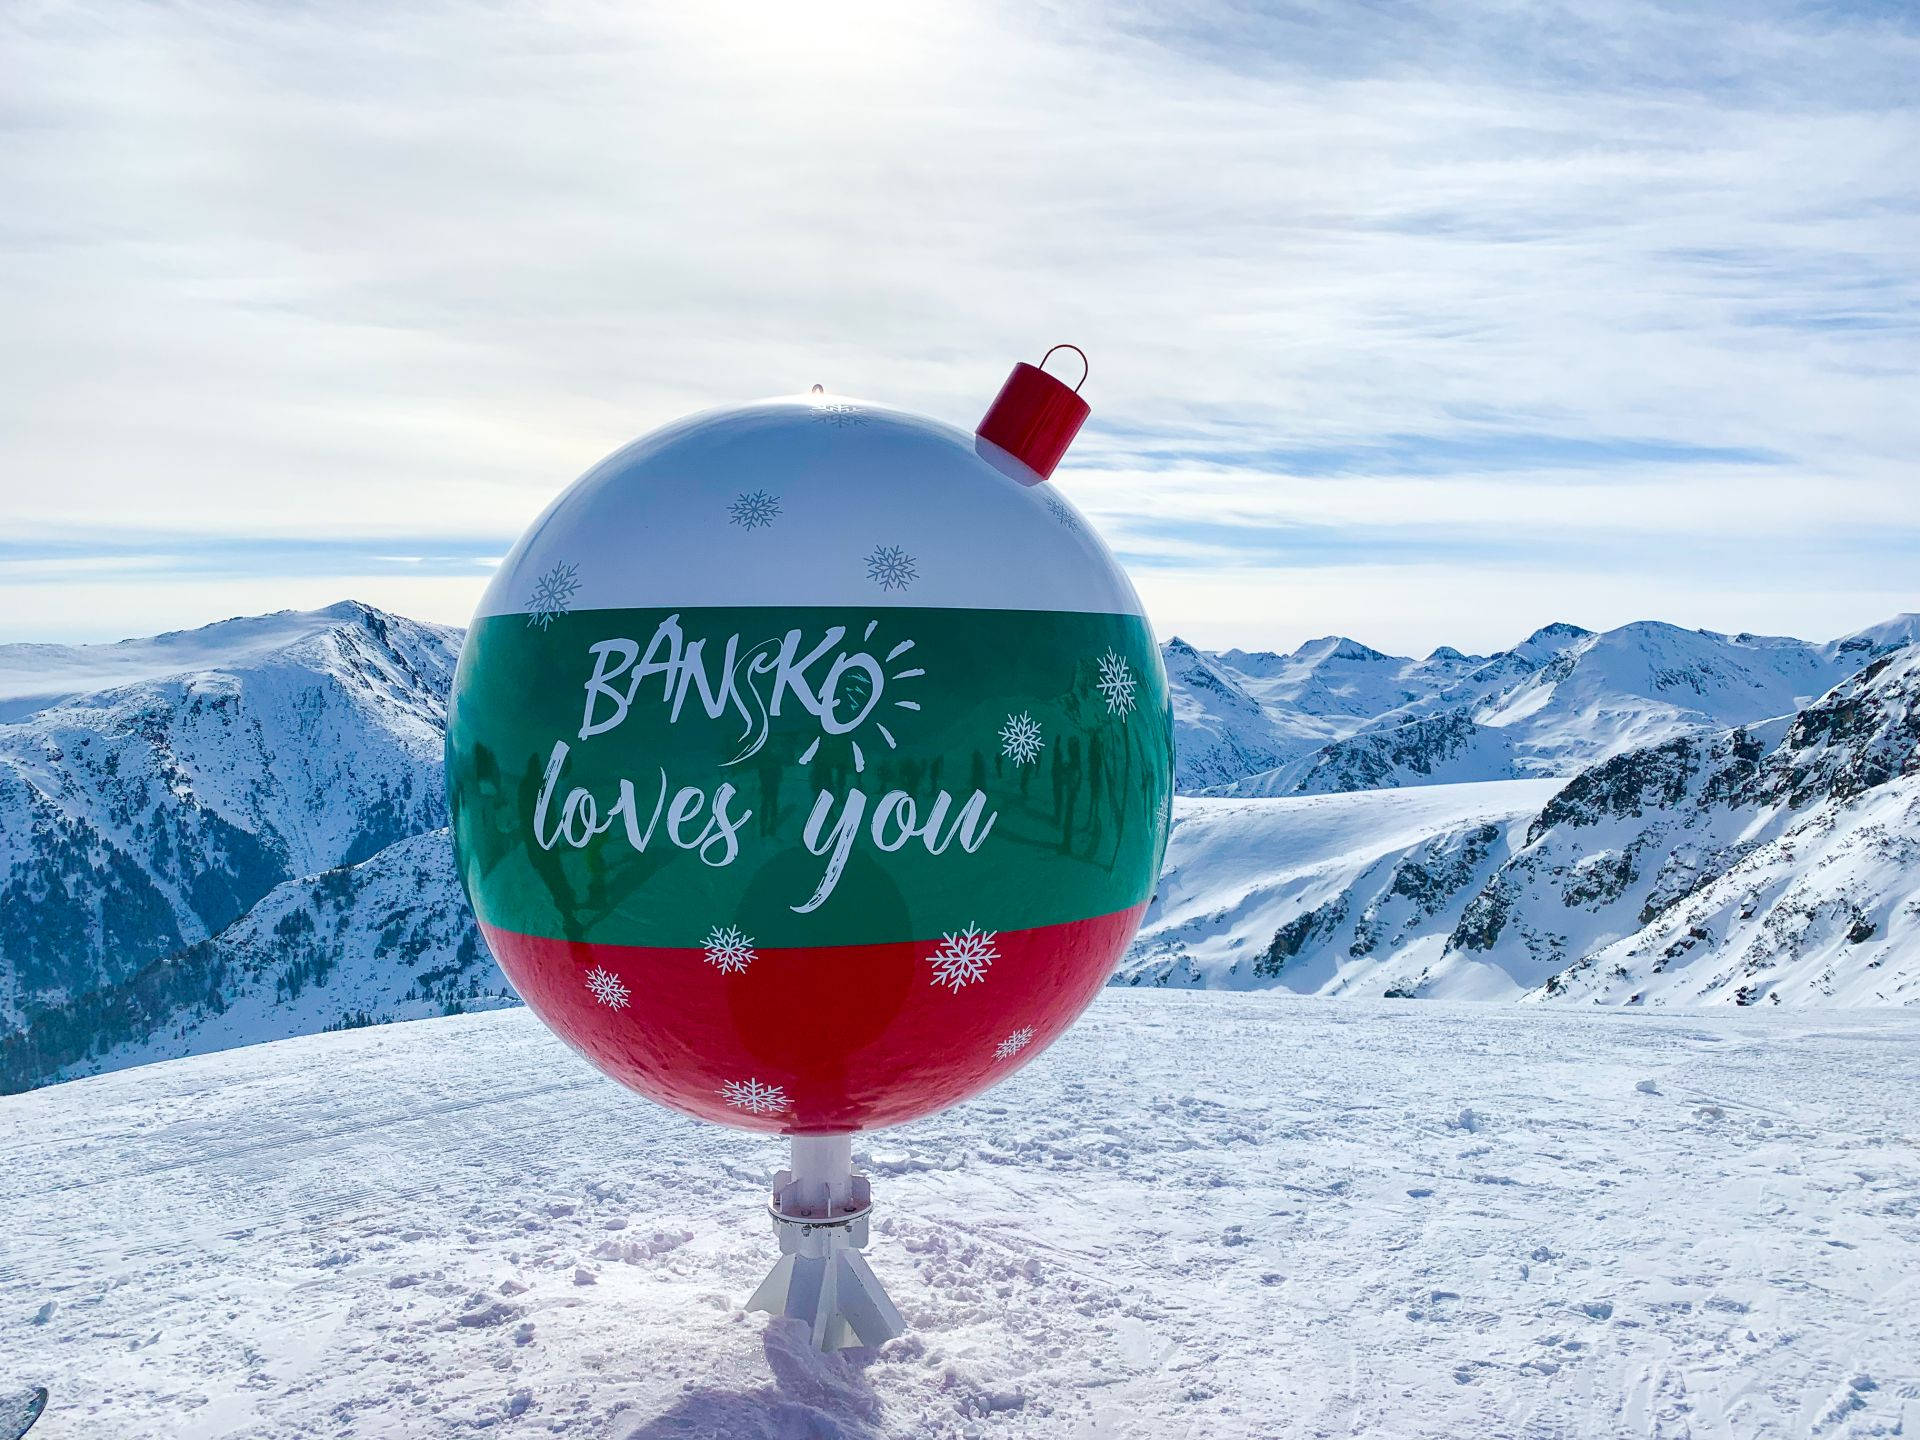 Skiing in Bansko, Bulgaria – A Beginner's Guide